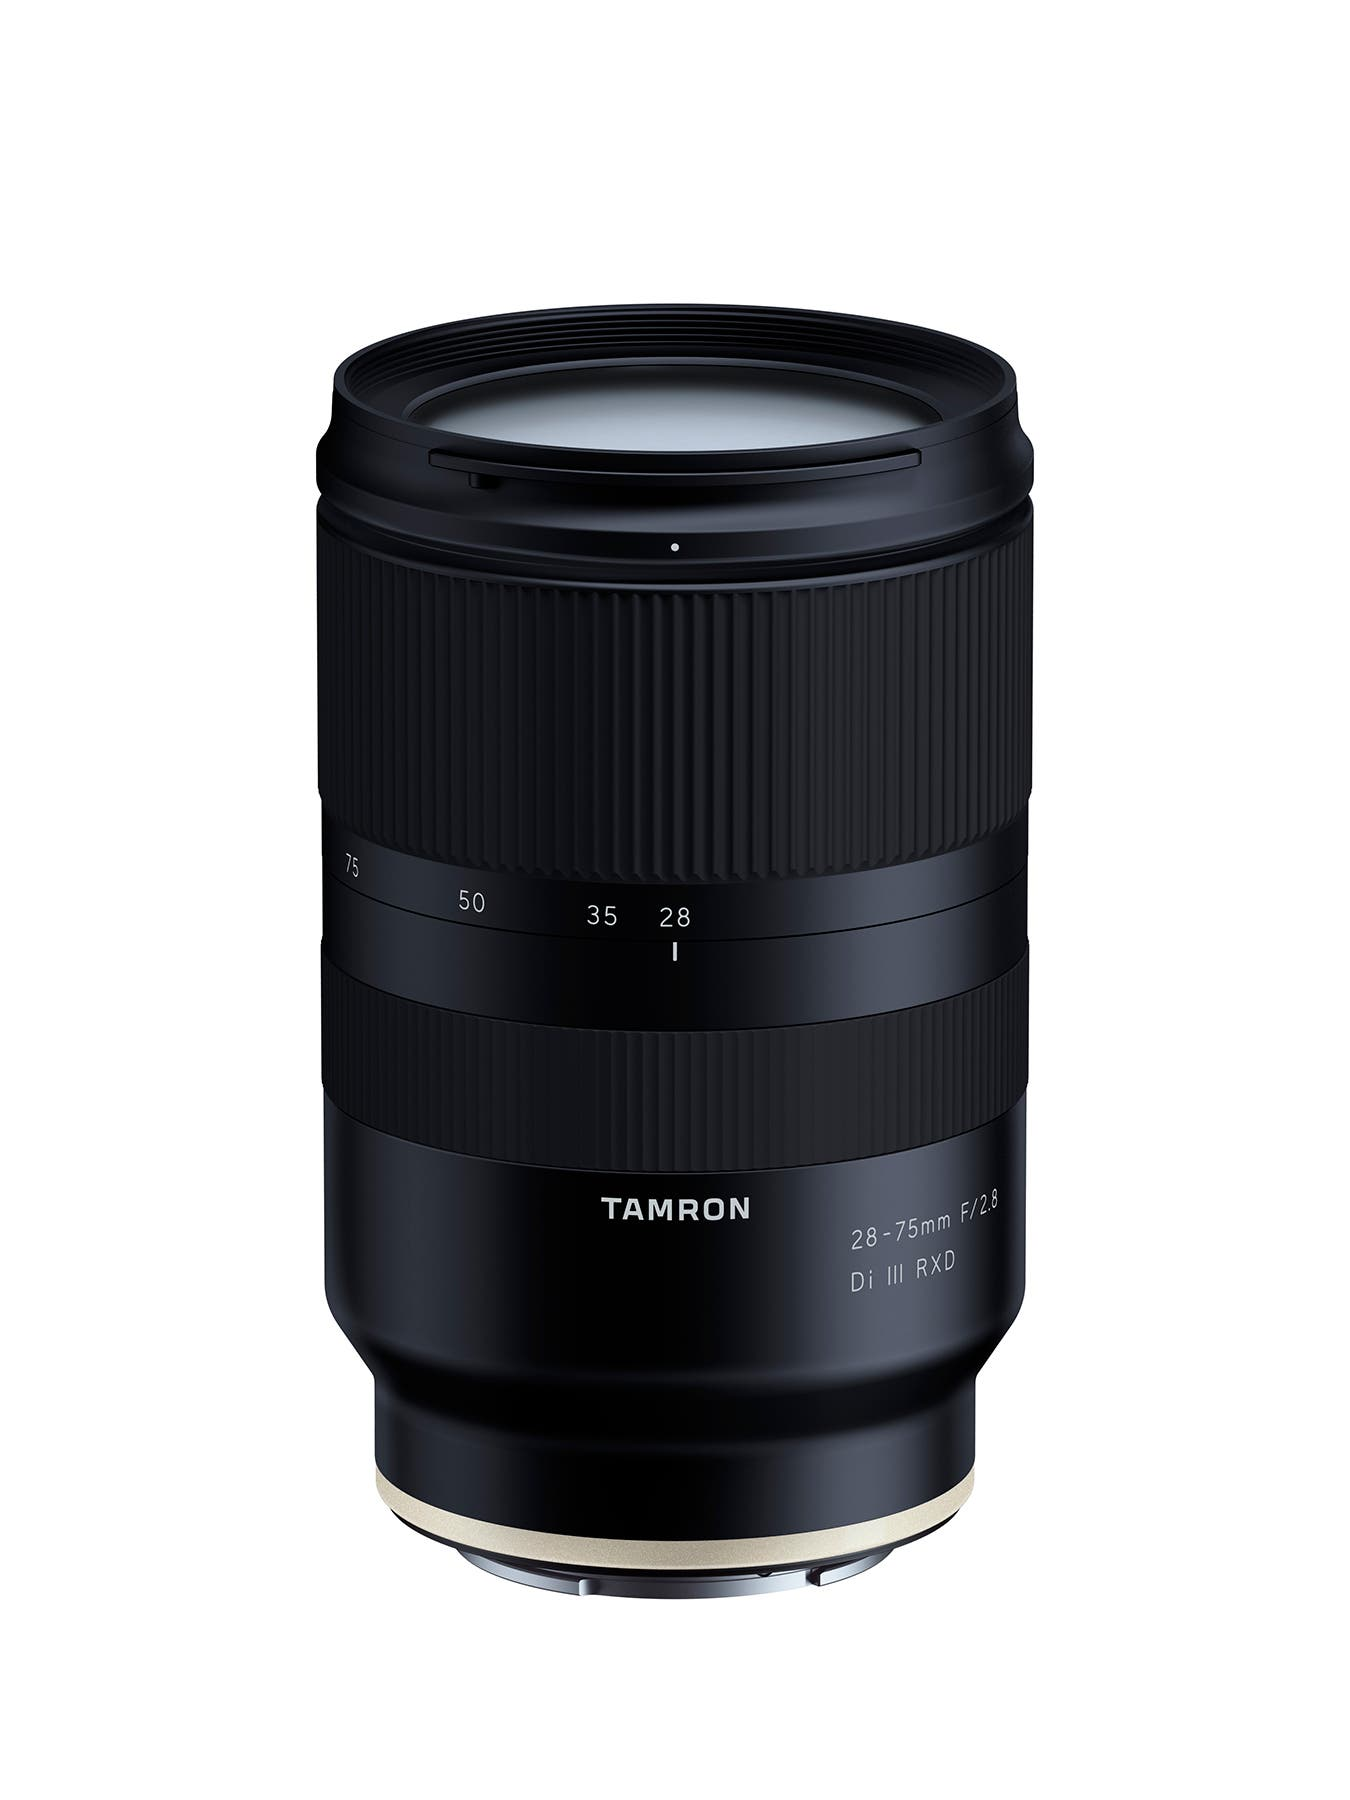 It's True: The Tamron 28-75mm f2.8 Di III RXD is Coming for the Sony FE Lineup of Cameras